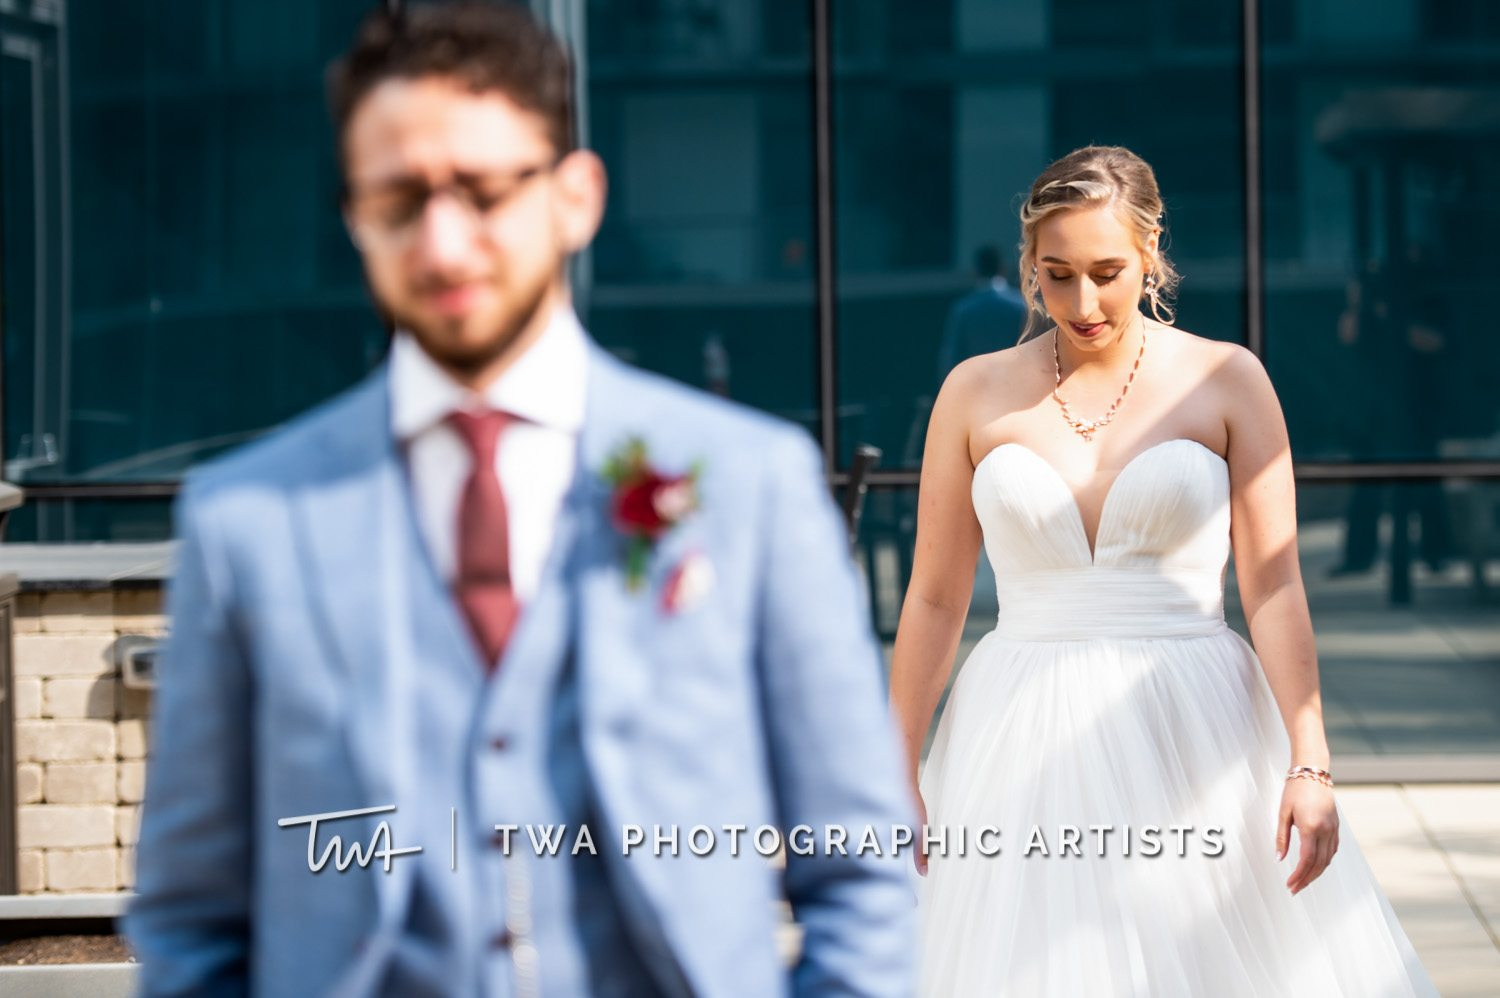 Chicago-Wedding-Photographer-TWA-Photographic-Artists-City-Hall-Event_Masterova_Alkhateeb_AA-0104